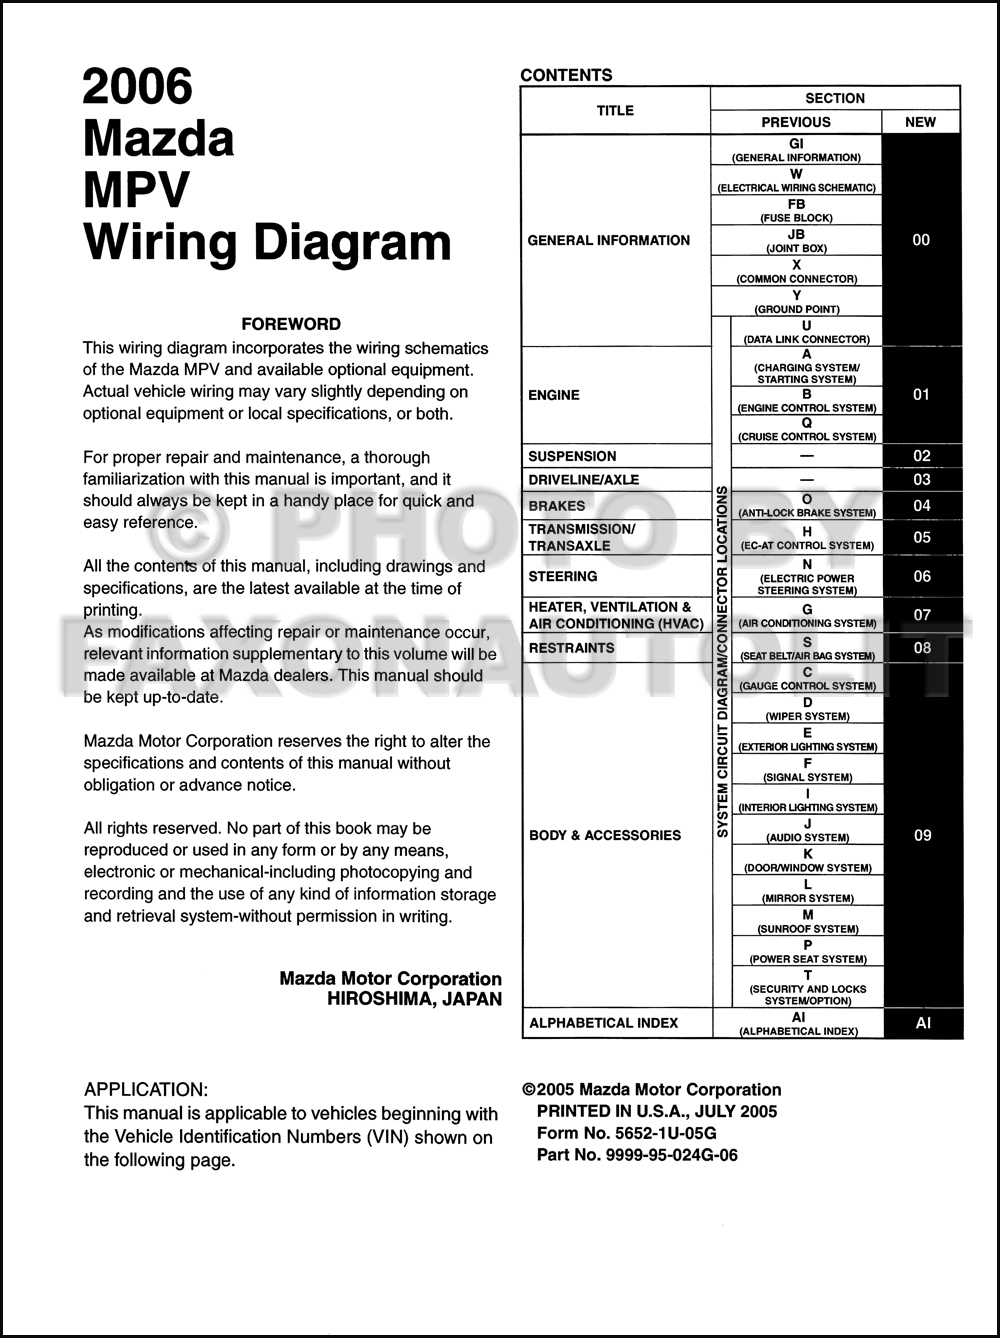 mazda cx 7 radio wiring diagram wiring diagramsmazda cx 7 audio wiring diagram technical wiring diagram suzuki sx4 radio wiring diagram mazda cx 7 radio wiring diagram